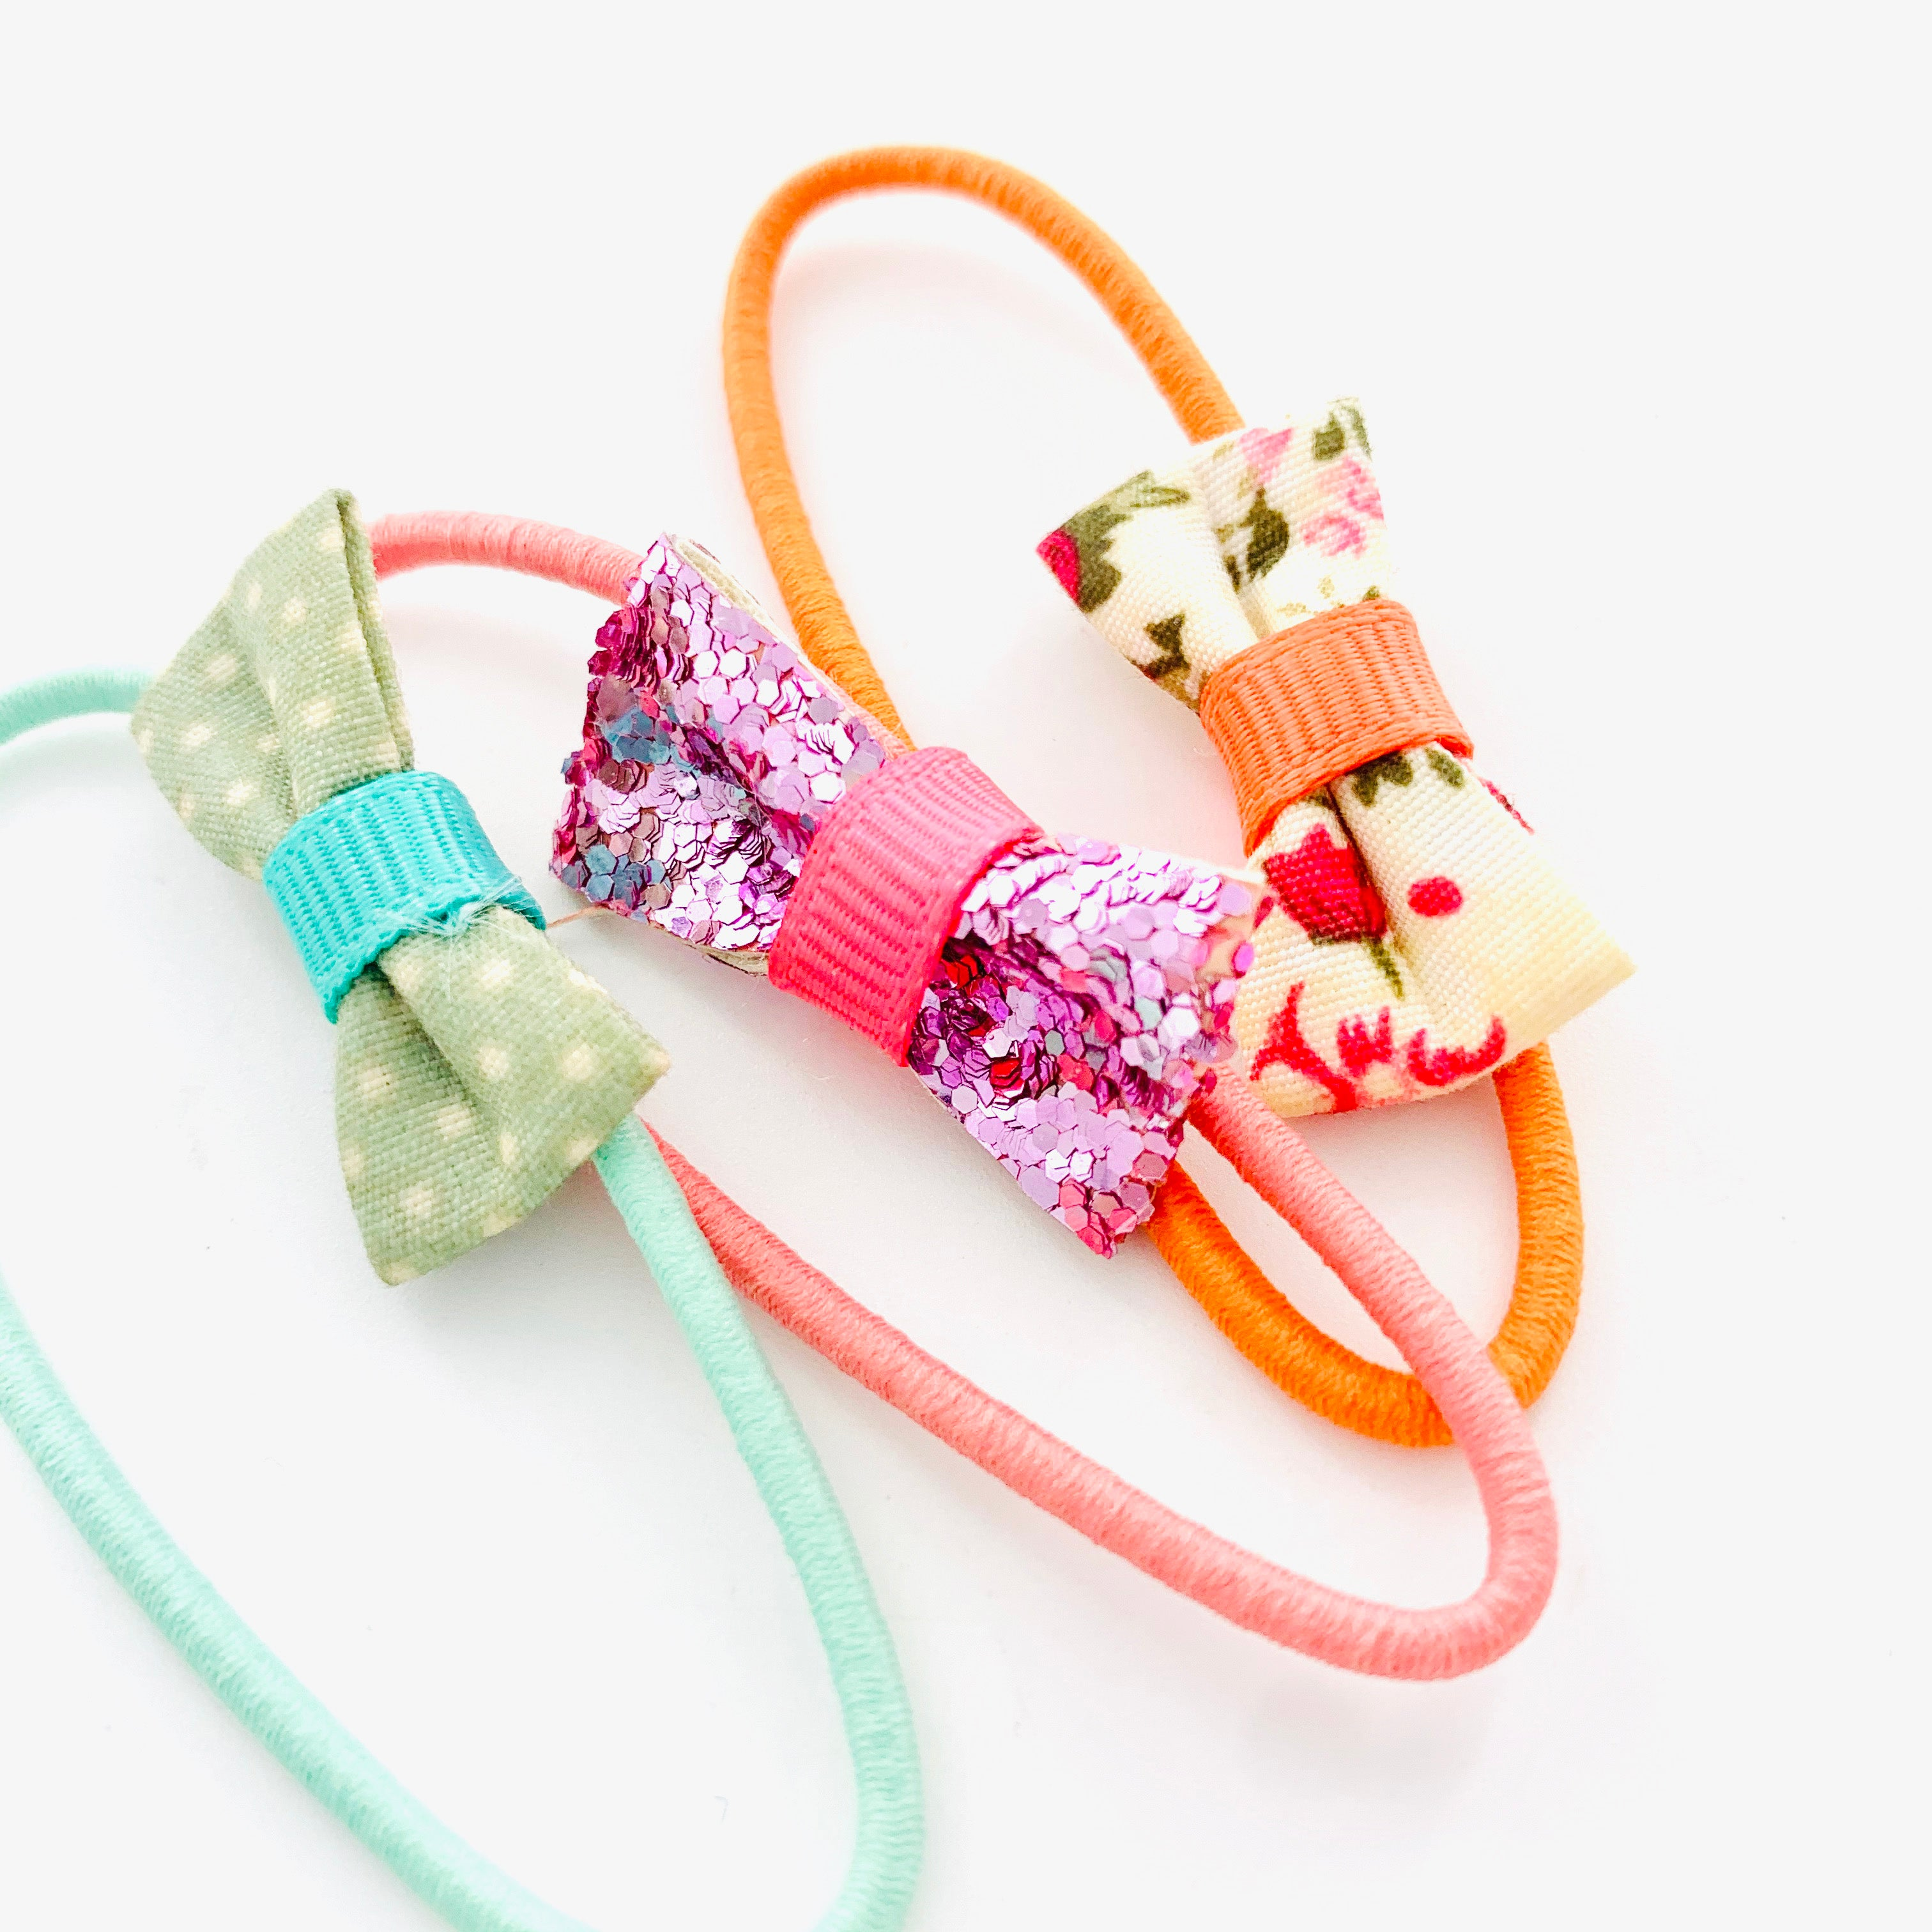 Coloured rubber bands with fabric and sequin ribbons